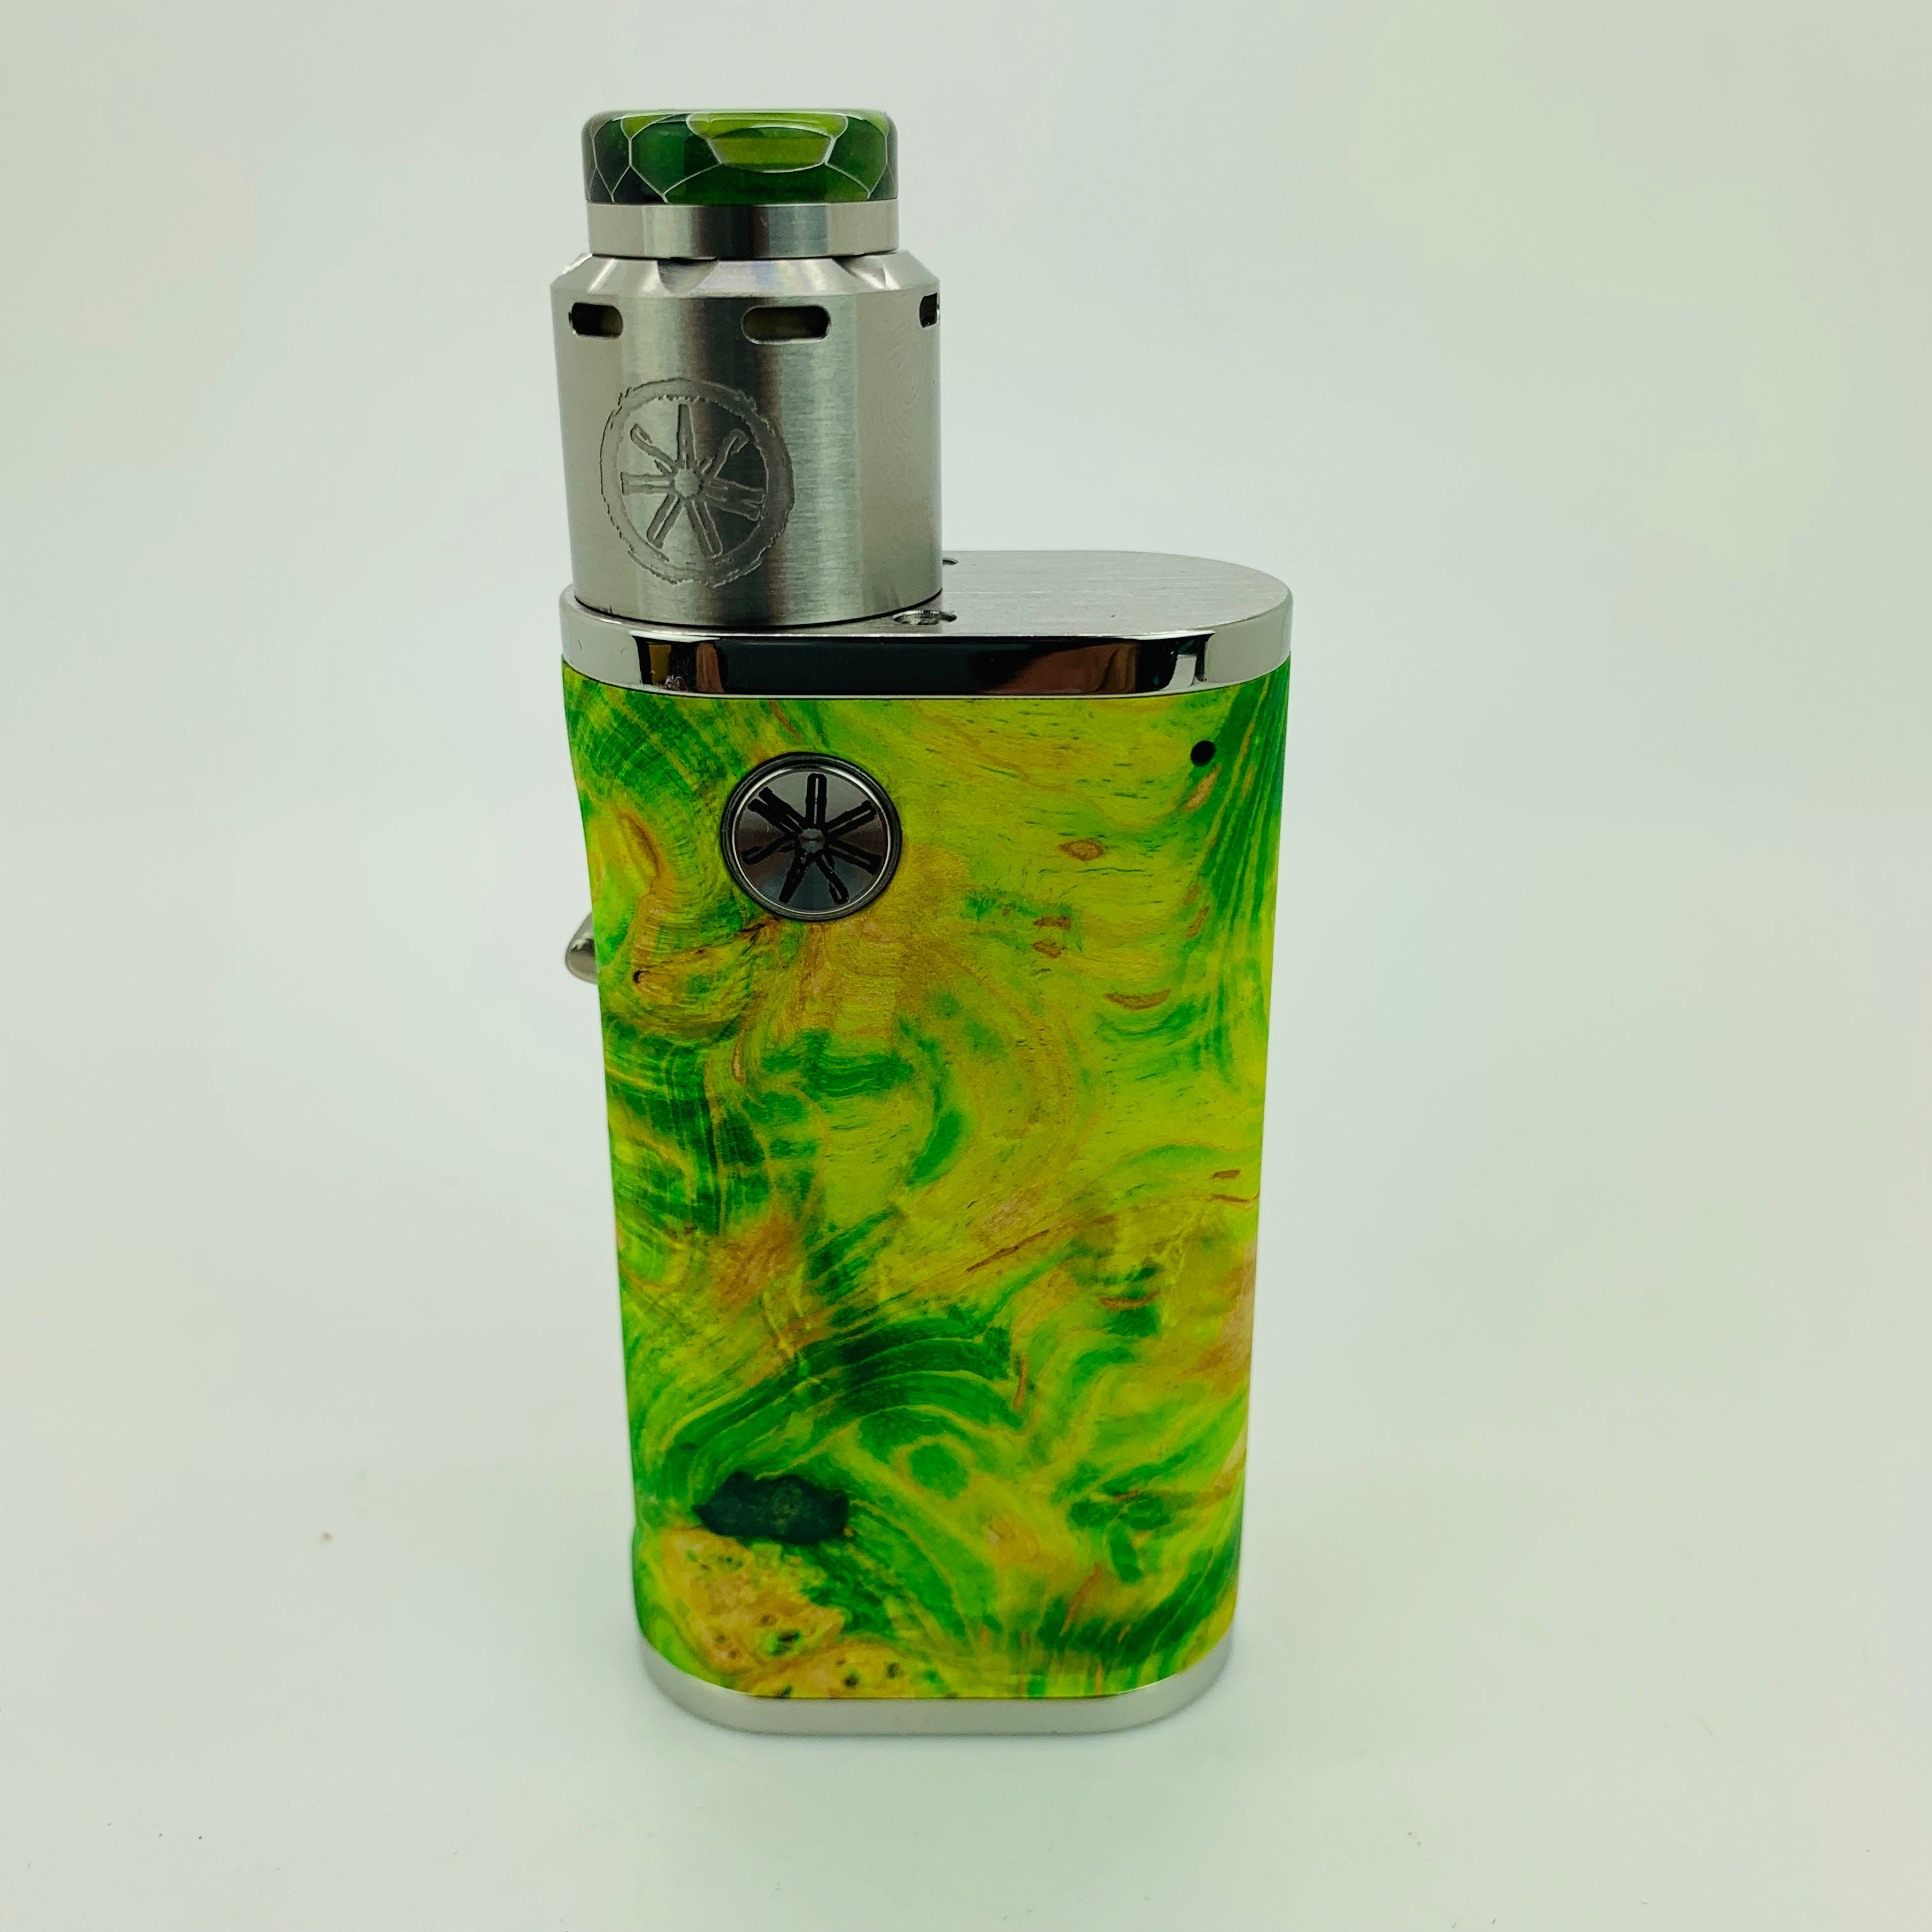 1 of 1 Pumper 18 Squonk Kit with .Blank RDA and Honeycomb Drip Tip #K23